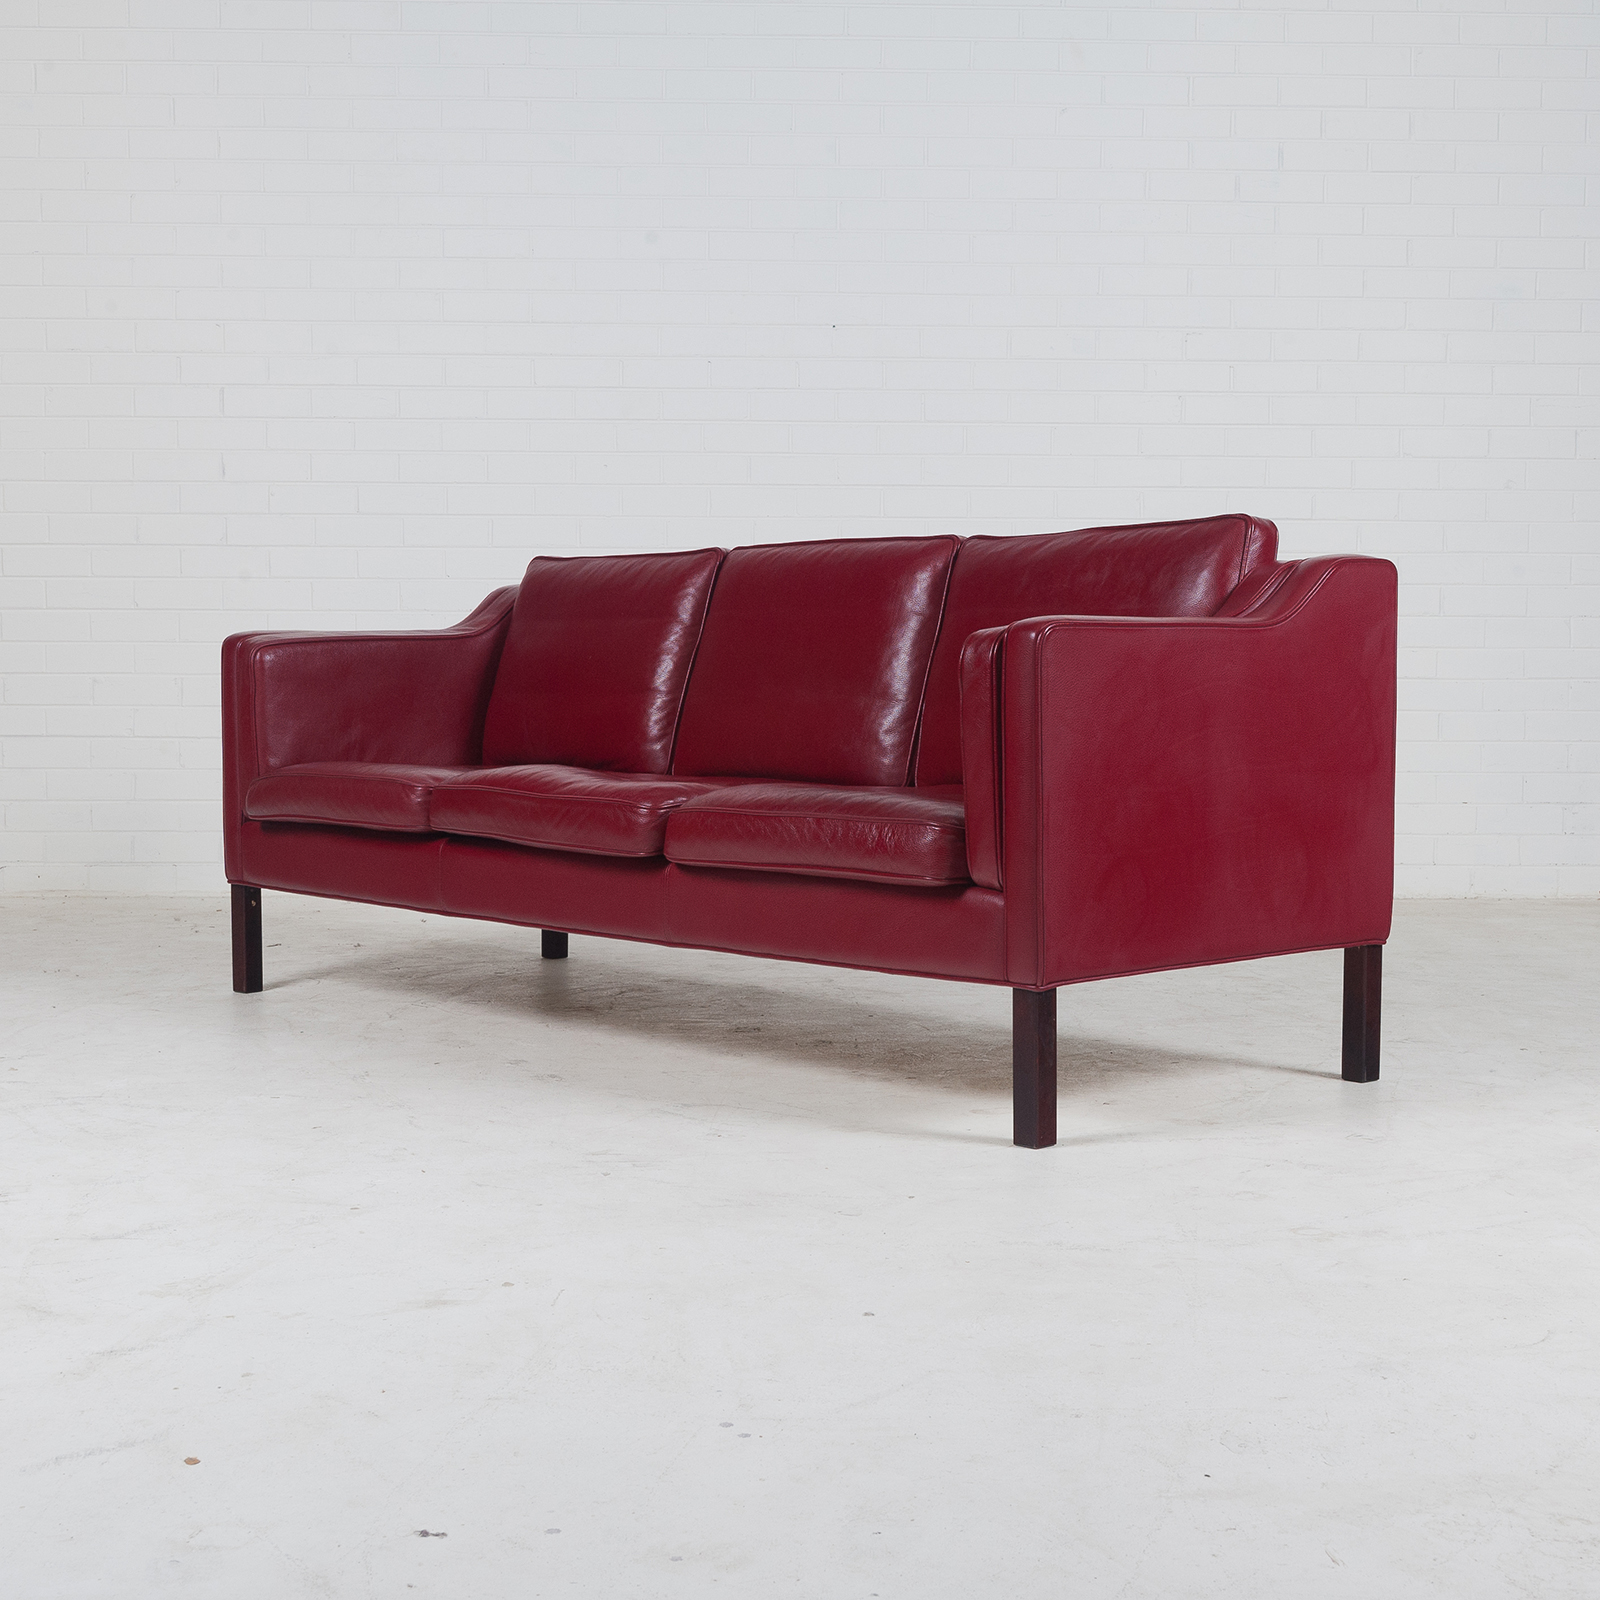 3 Seat Sofa In Cherry Red Leather And Stained Legs 1960s